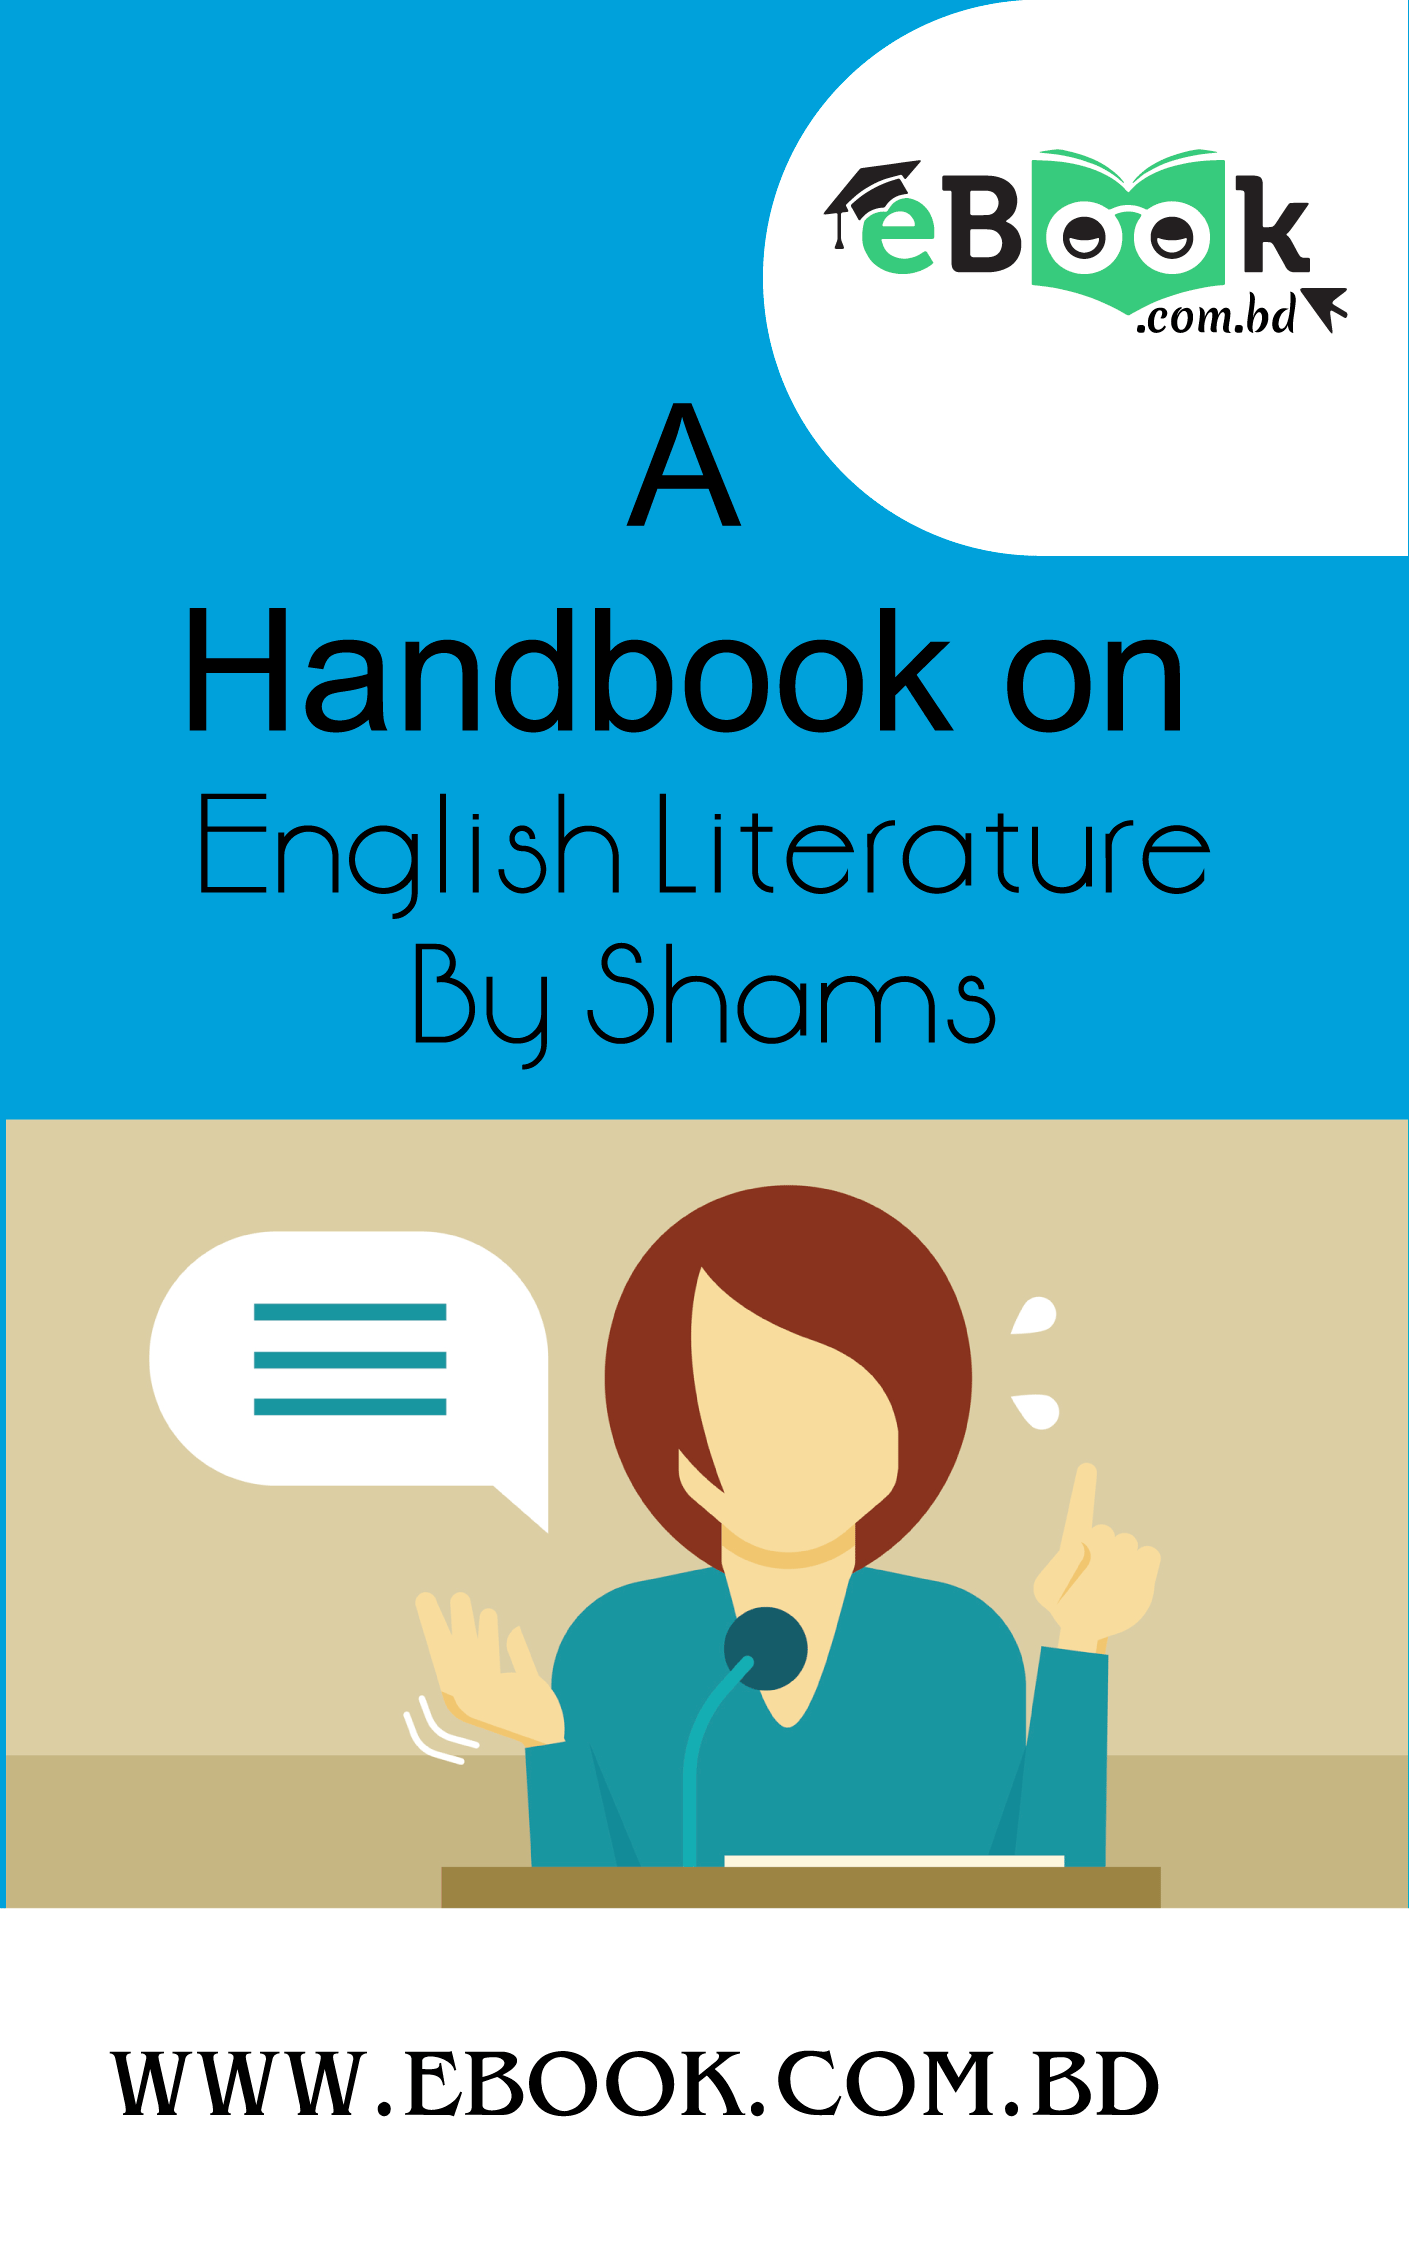 Thumbnail of A Handbook on English Literature By Shams